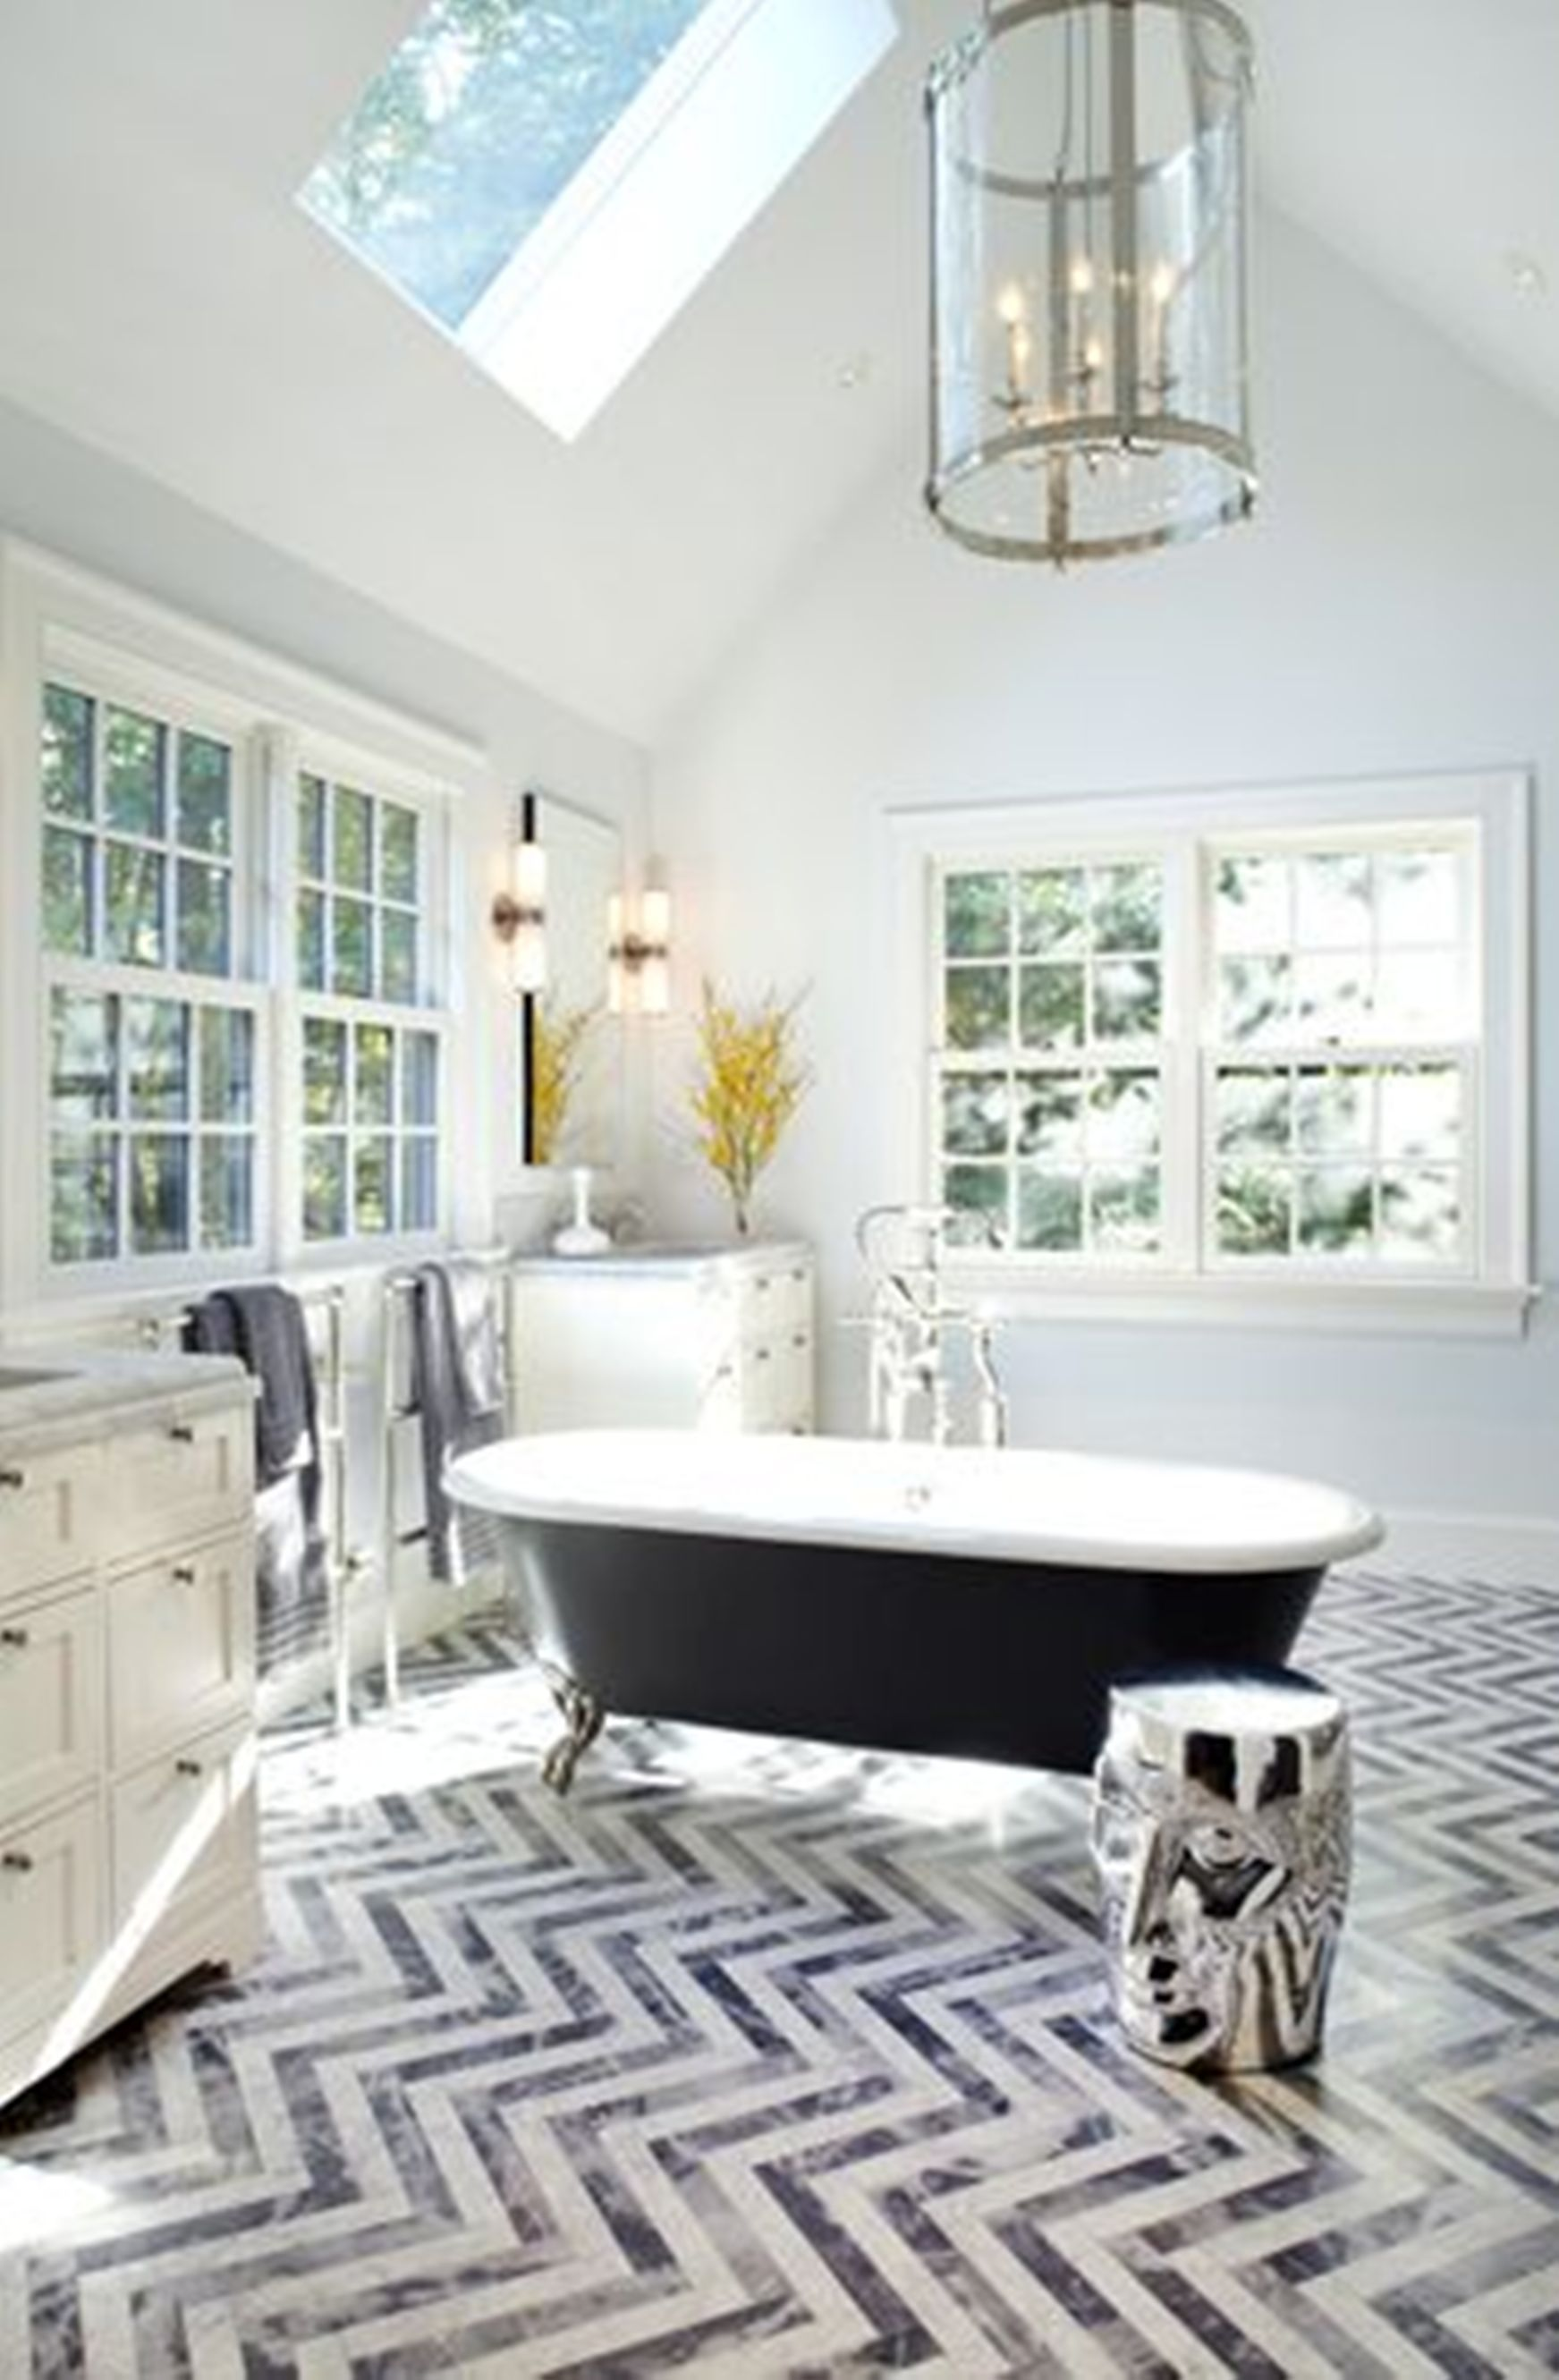 22 Eclectic Ideas Of Bathroom Wall Decor: 20 Beautiful Eclectic Bathroom Decor Ideas That Will Amaze